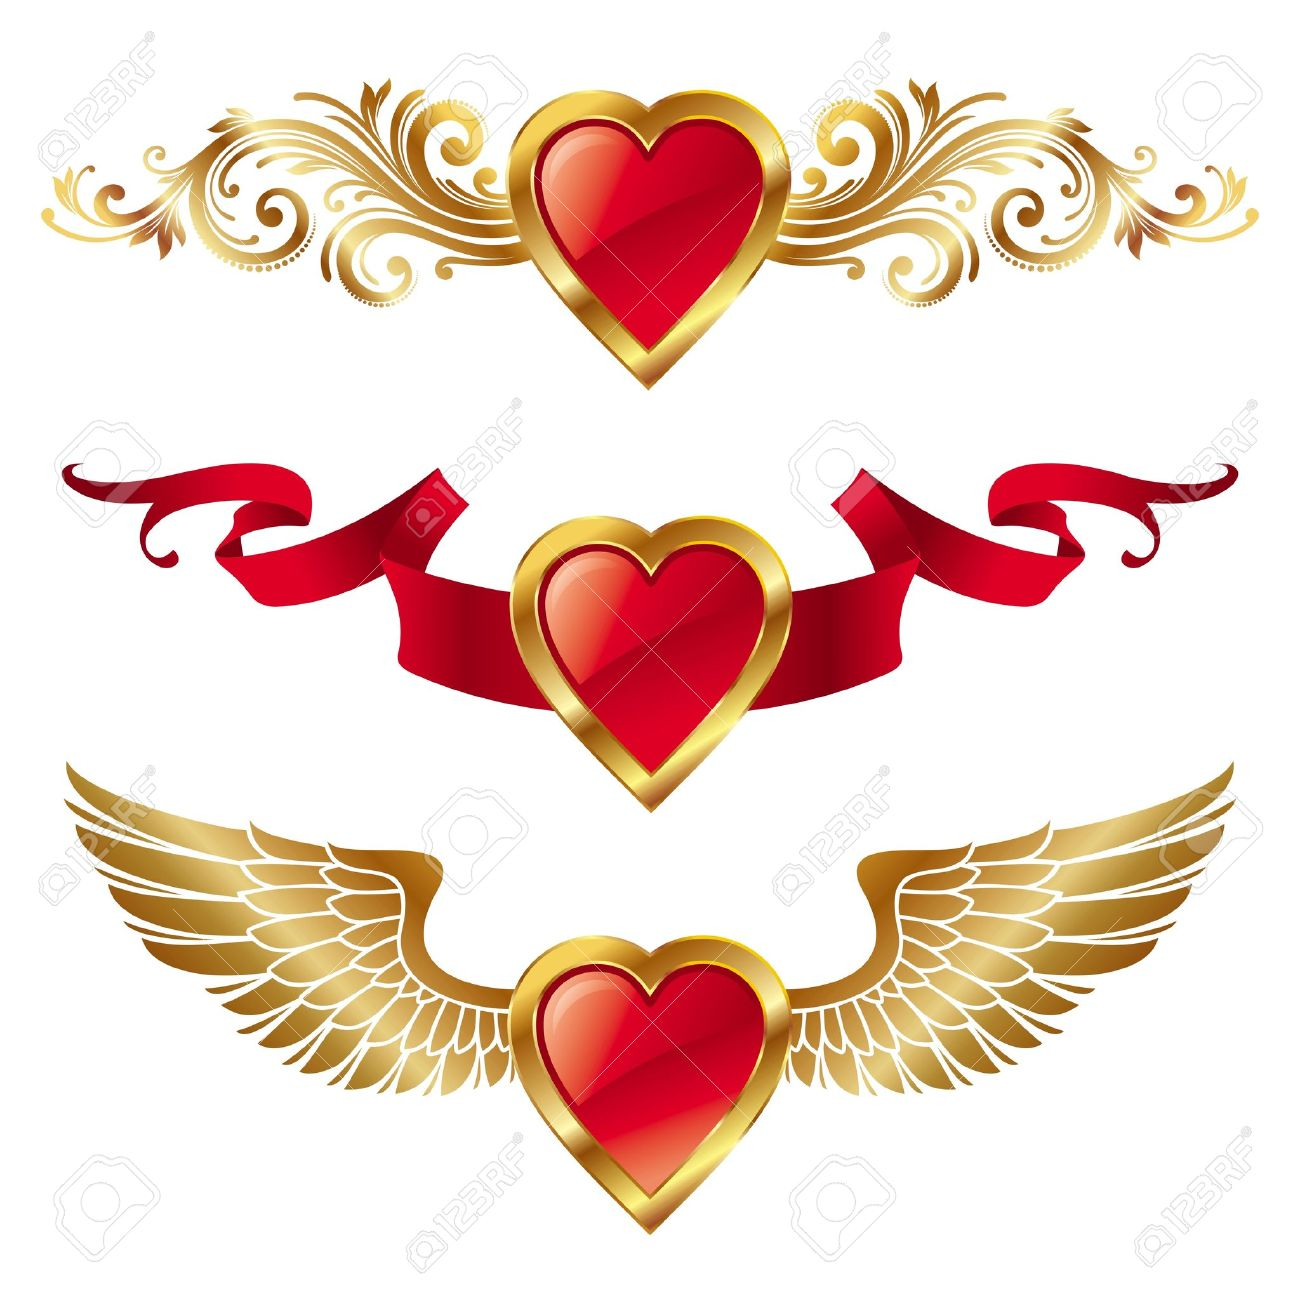 17 621 heart with wings cliparts stock vector and royalty free